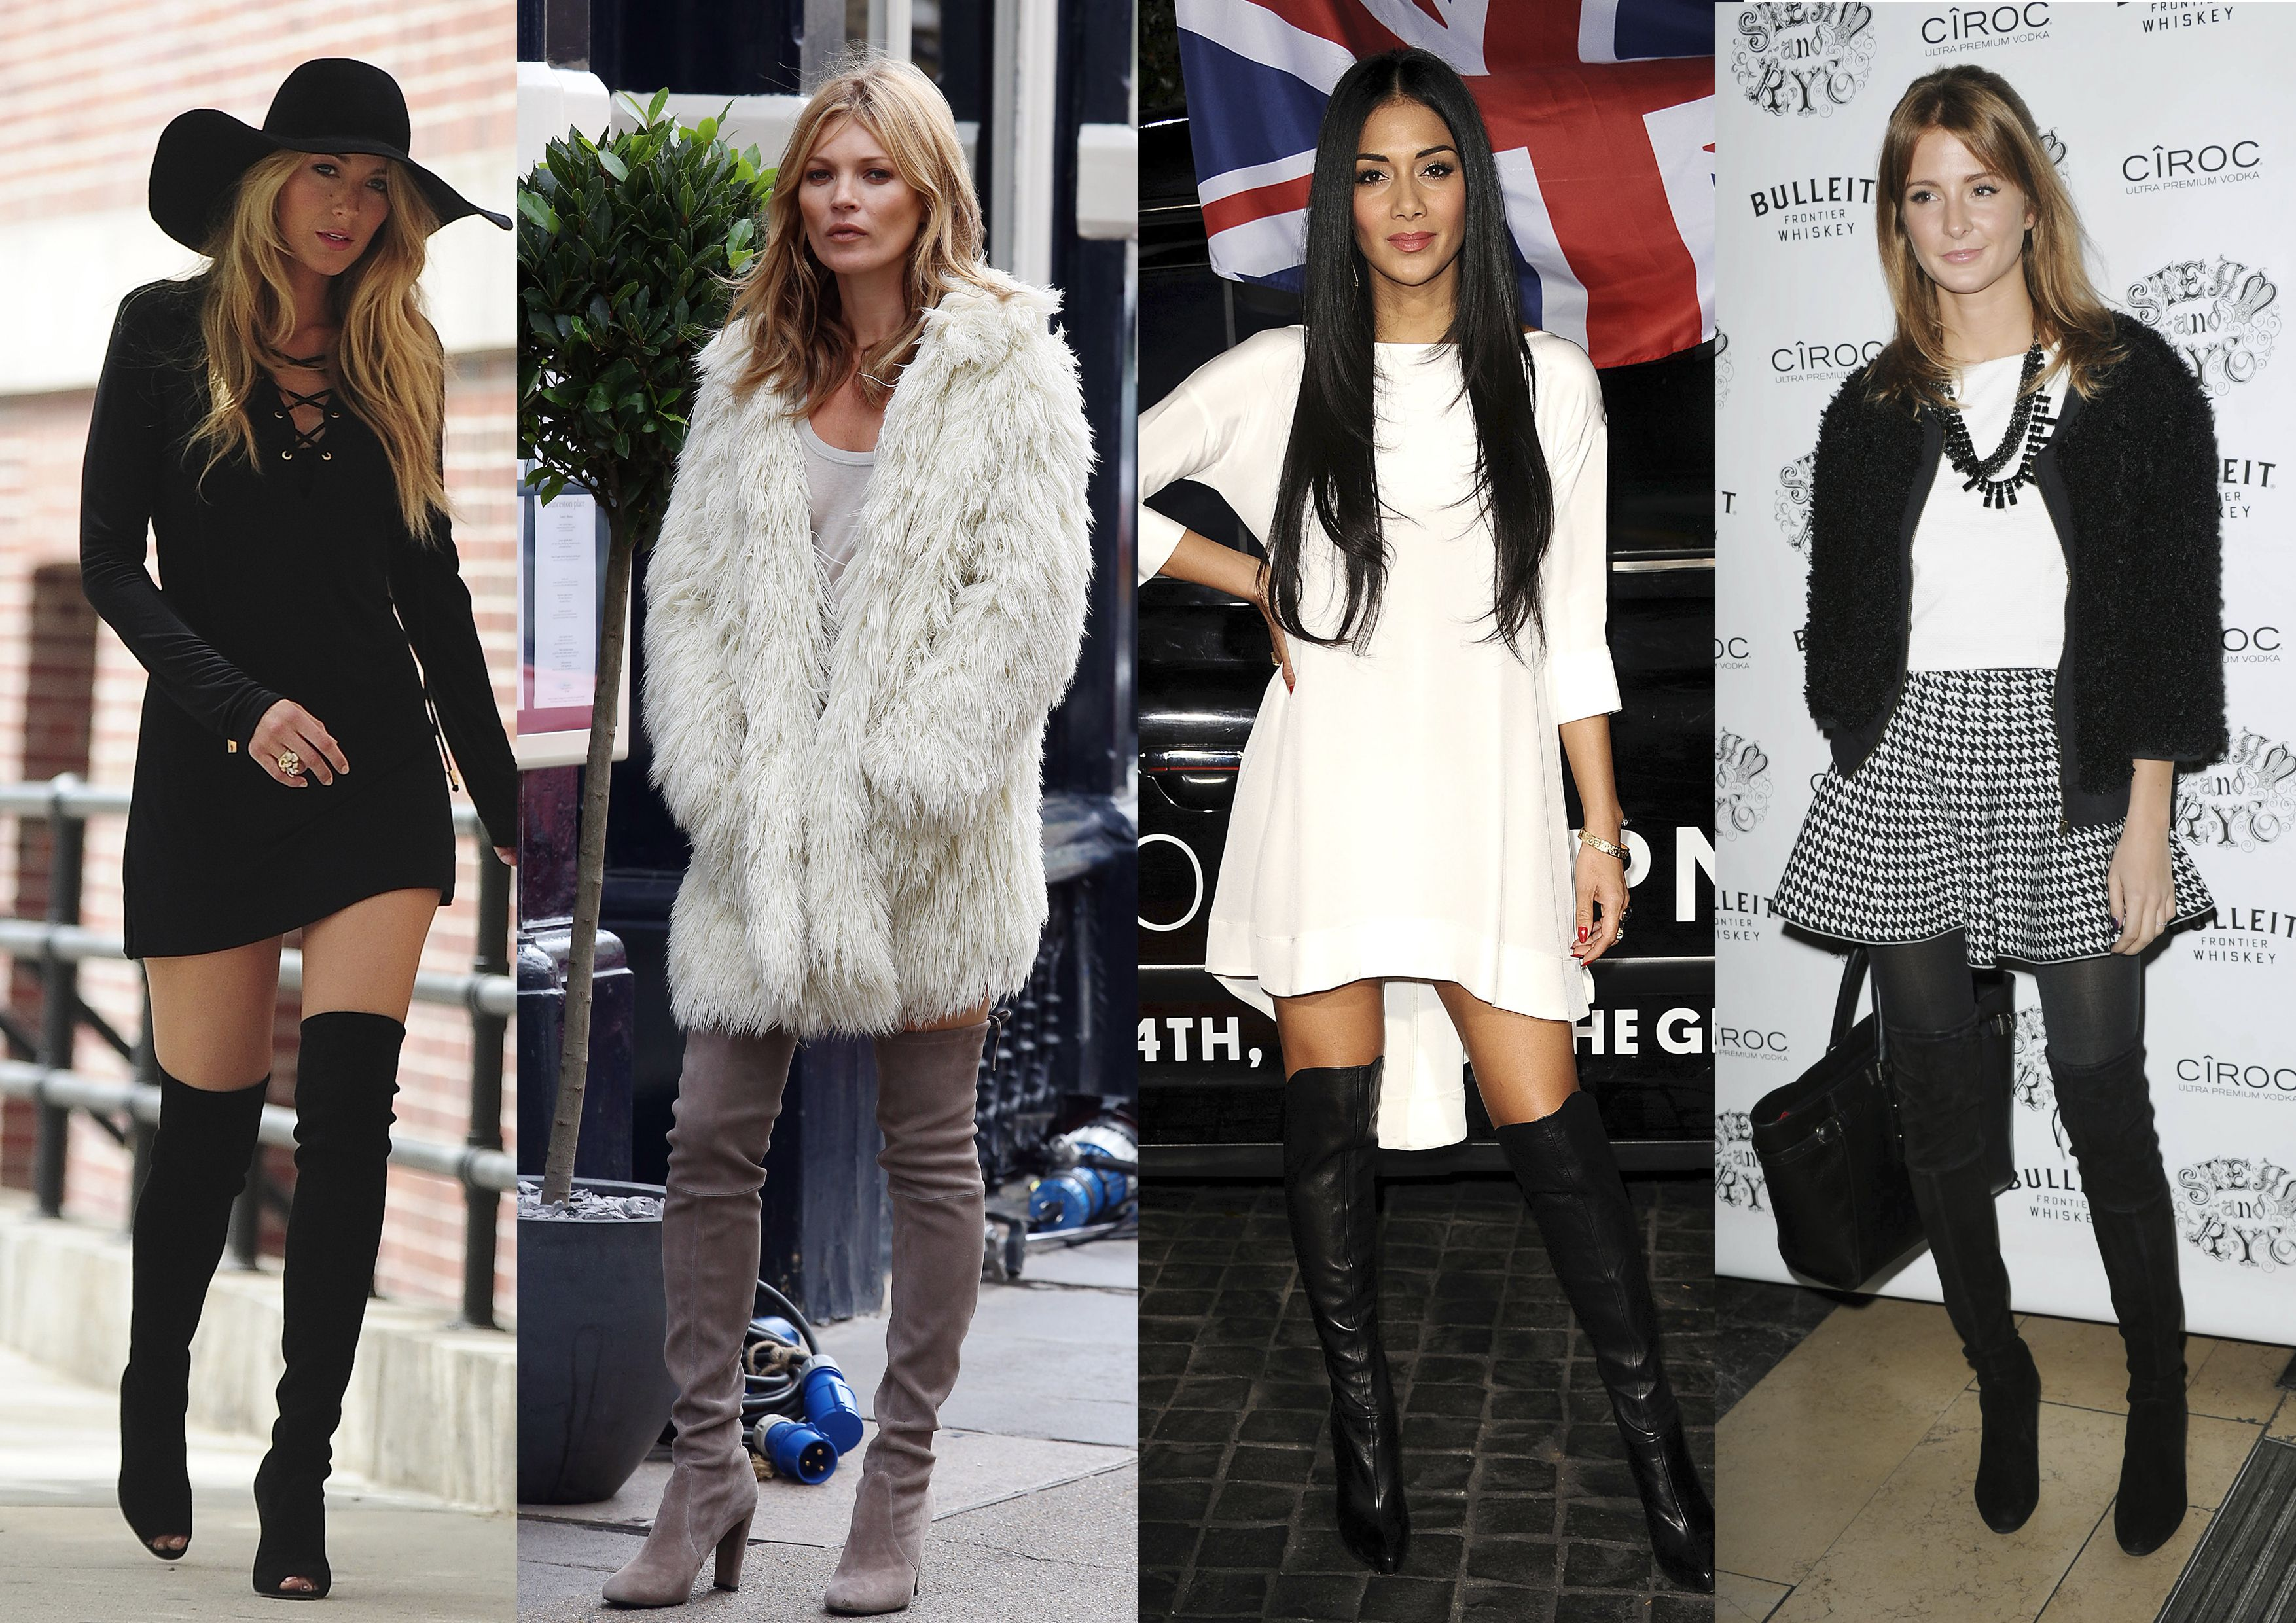 a22361780c77c How to wear over-the-knee boots, (without looking like an extra from Pretty  Woman)